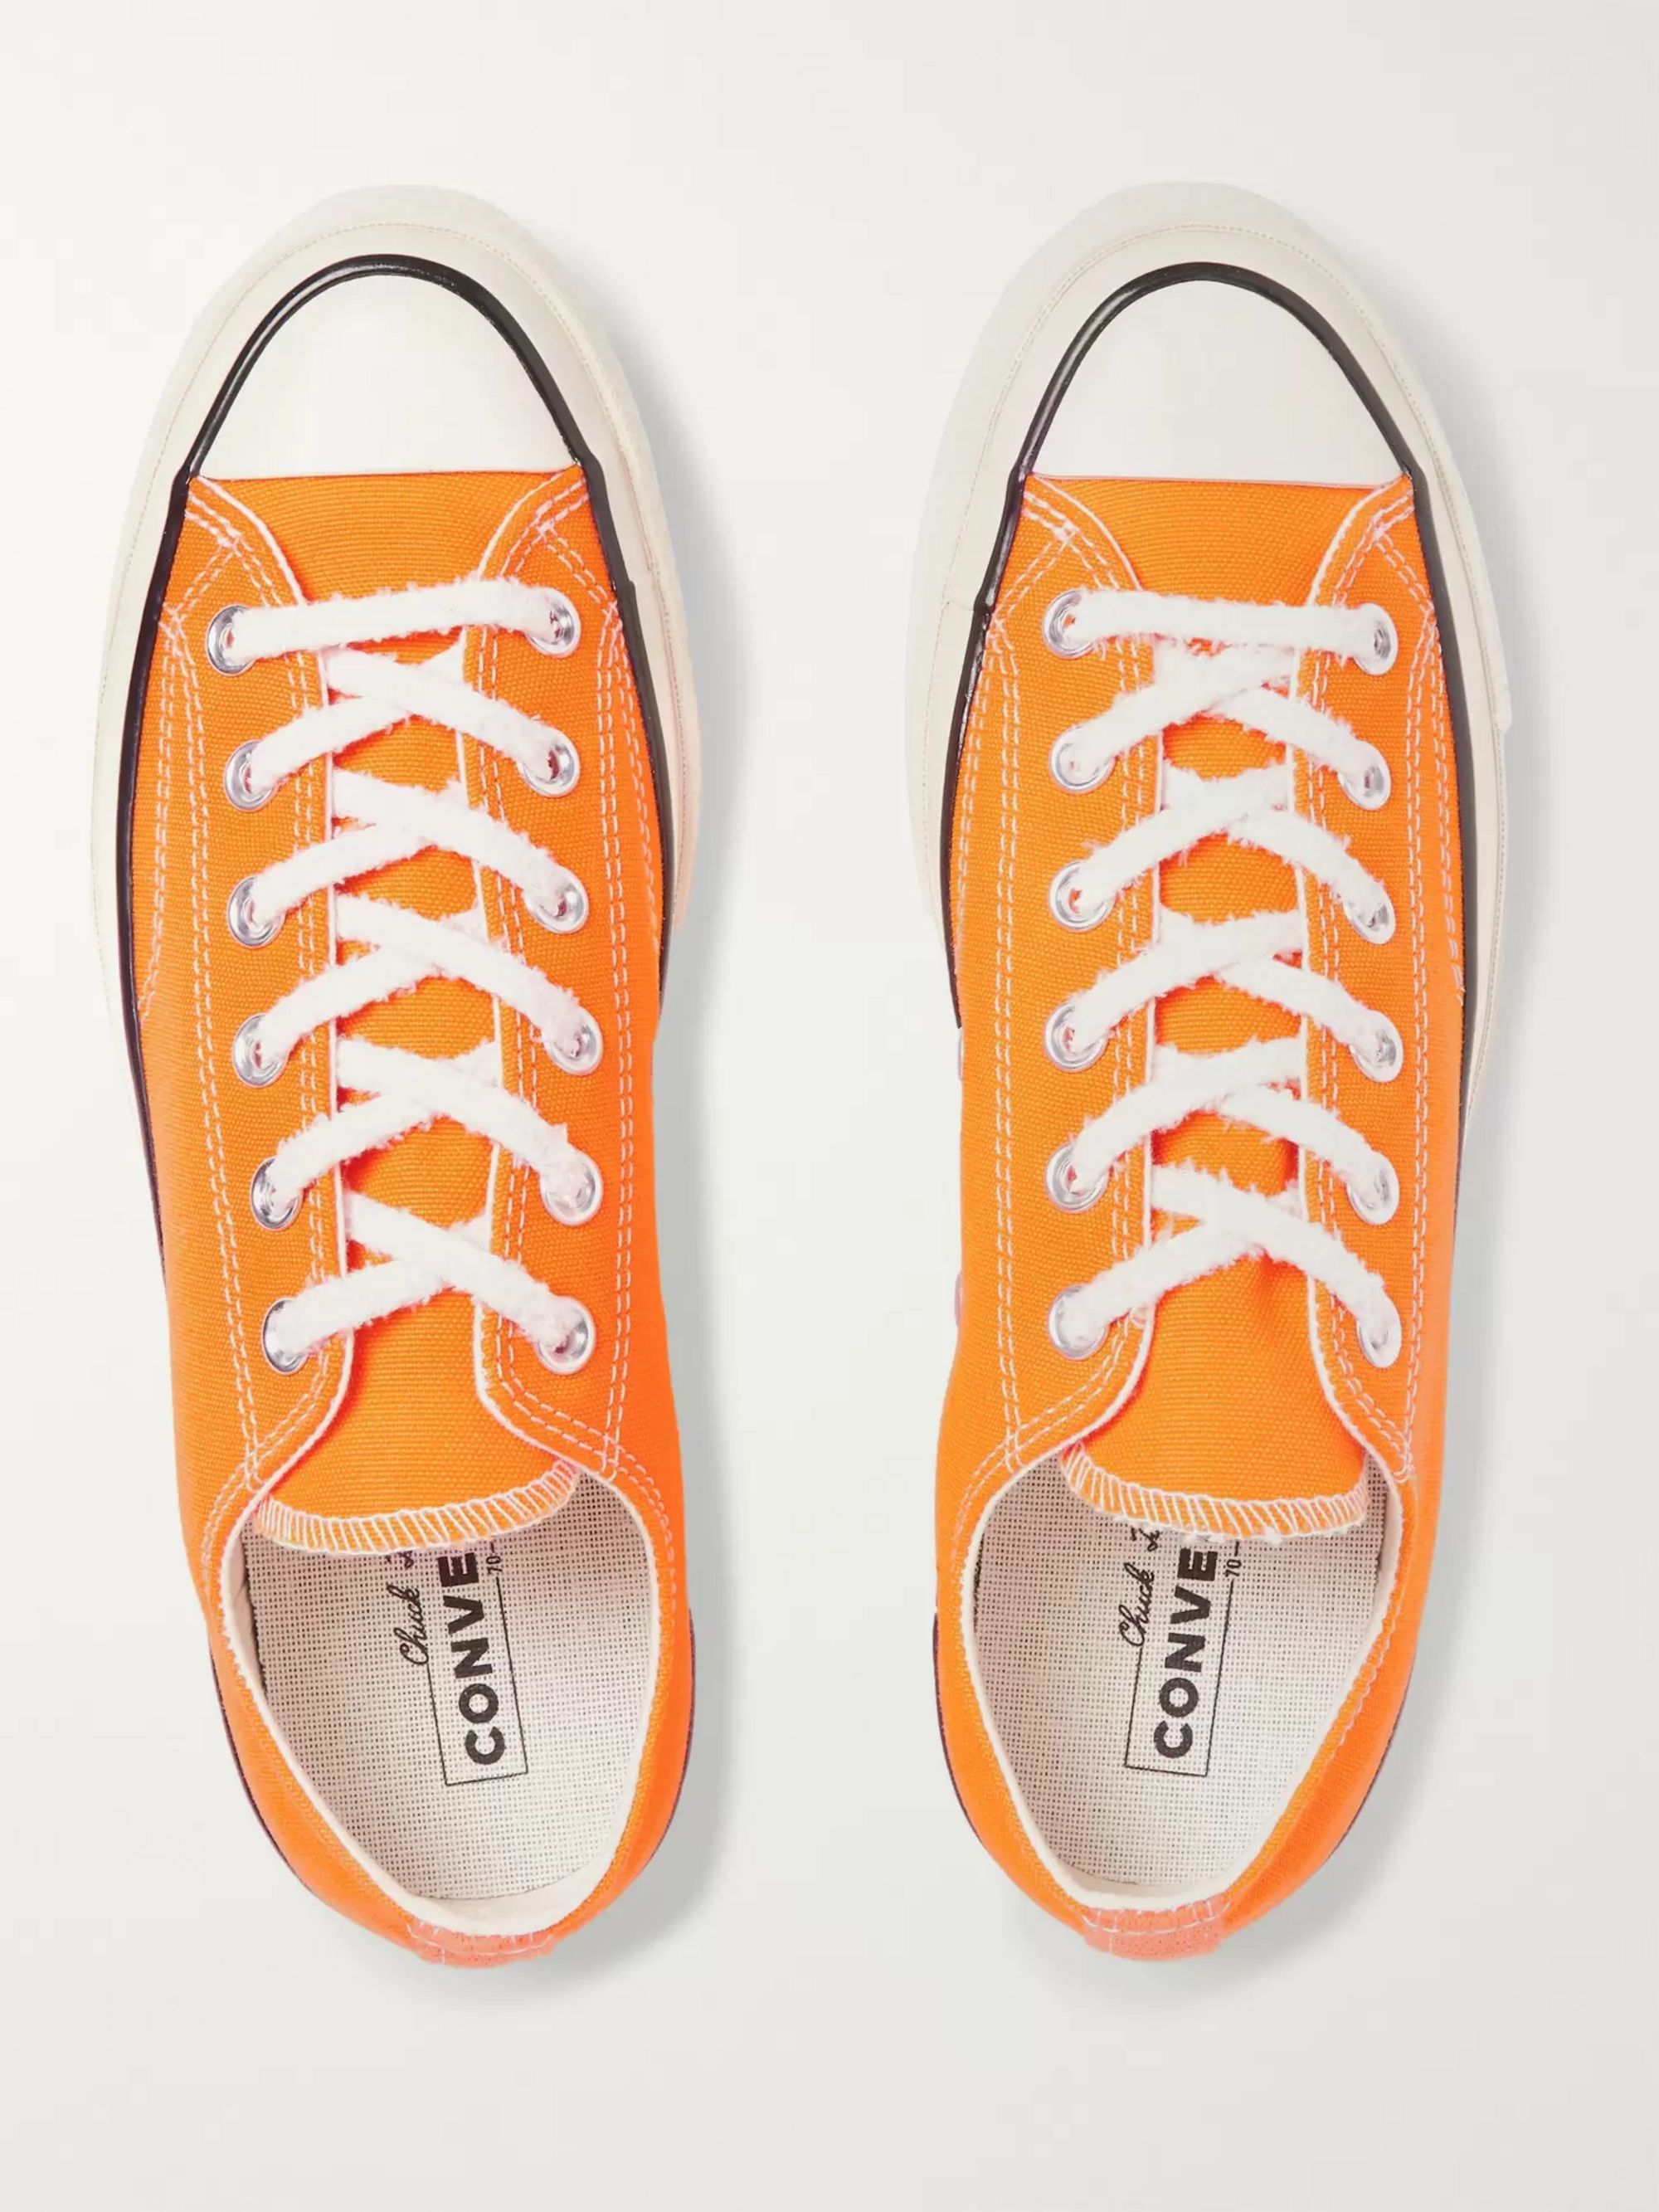 Converse Chuck 70 OX Canvas Sneakers